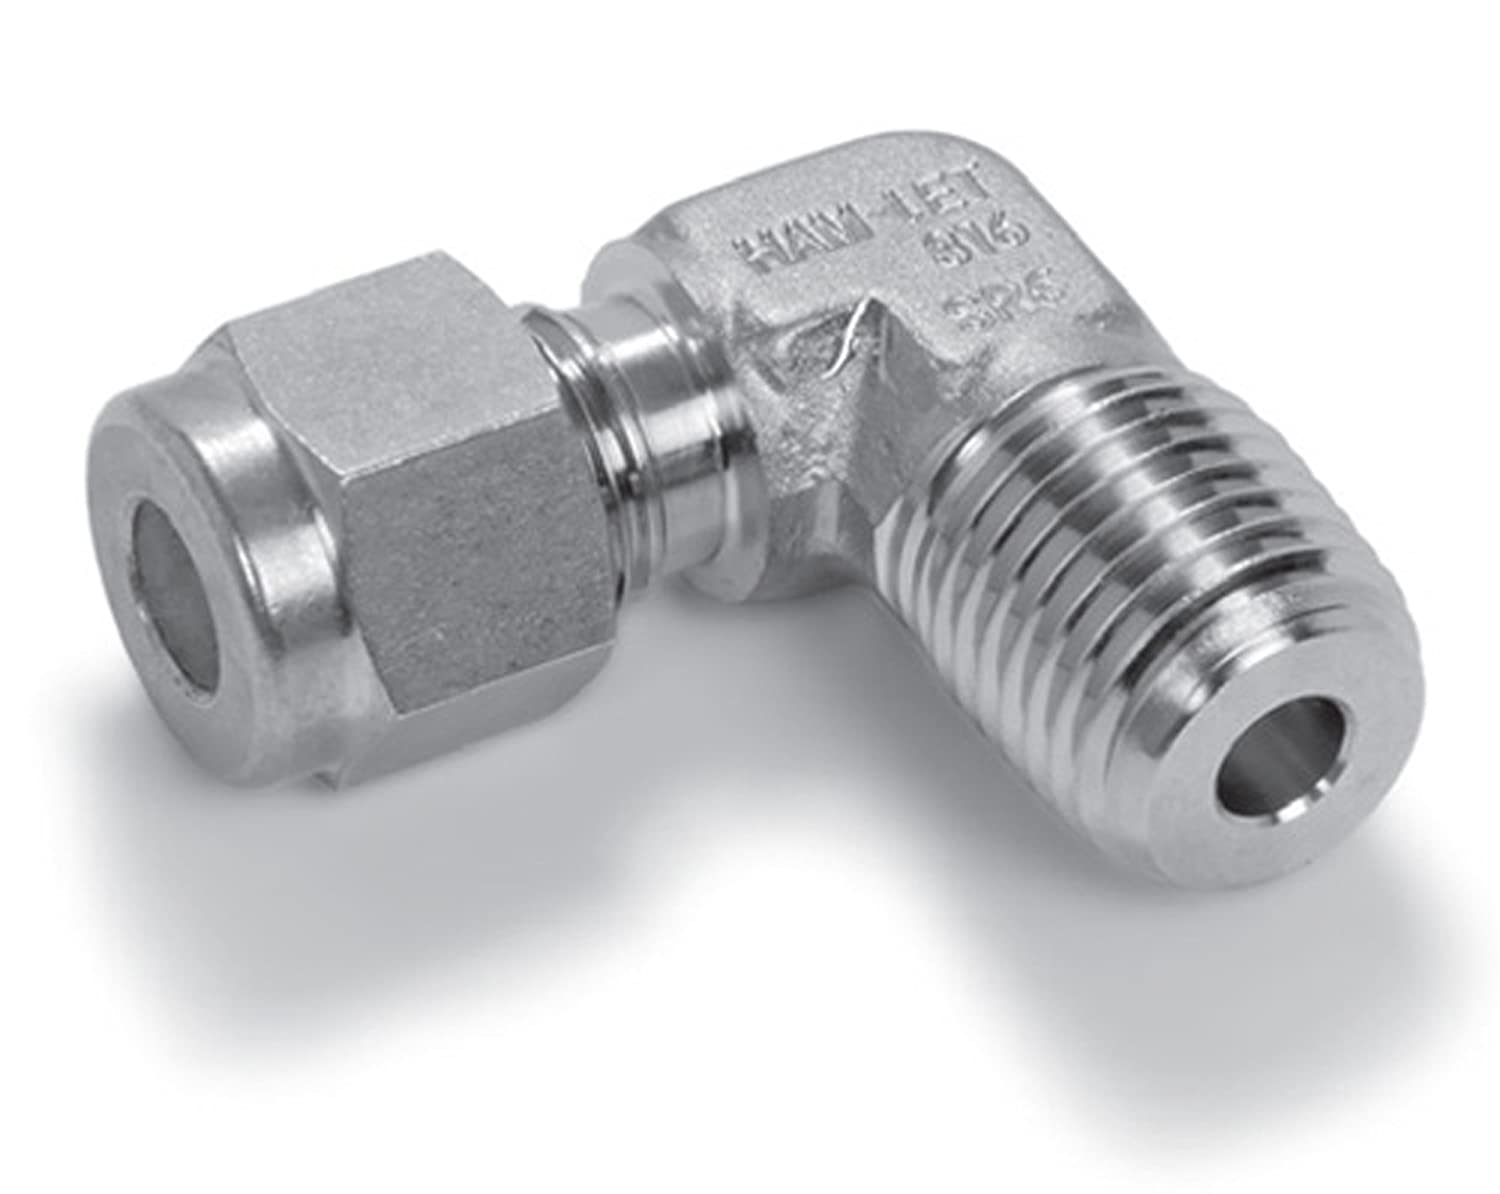 Ham-Let Stainless Steel 316 Let-Lok Compression Fitting 1 NPT Male x Tube OD 90 Degree Elbow